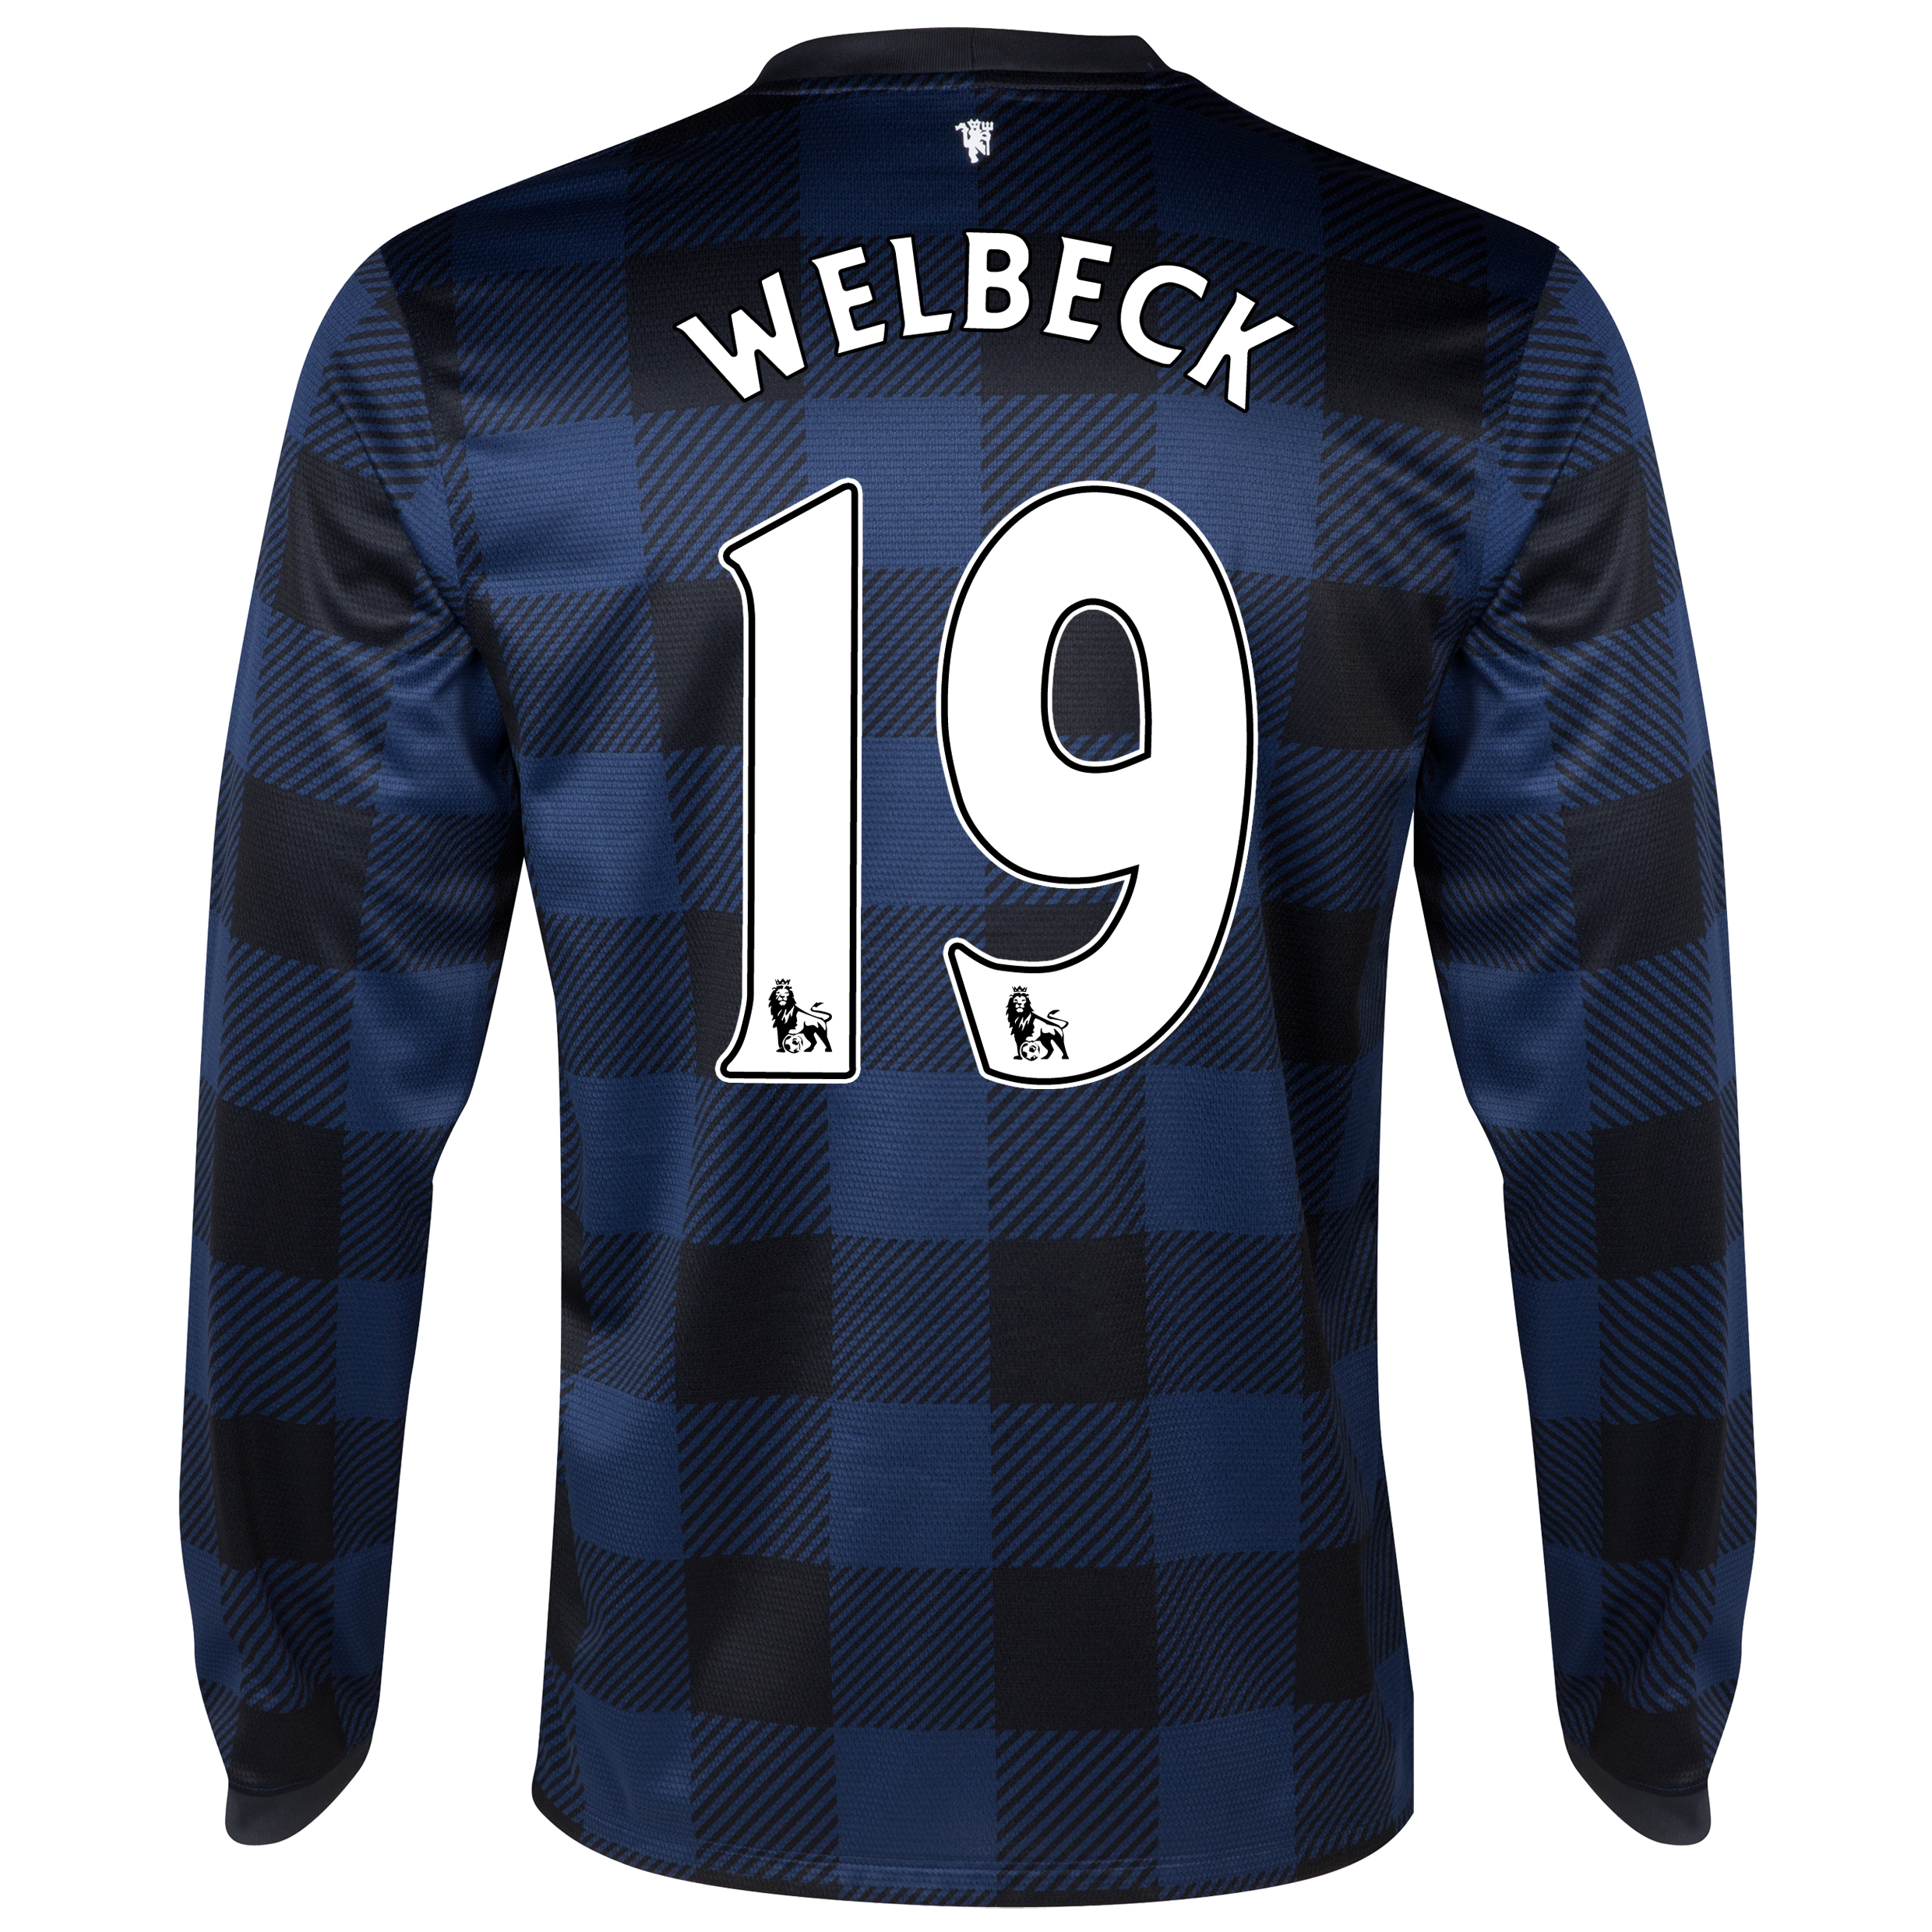 Manchester United Away Shirt 2013/14 - Long Sleeved with Welbeck 19 printing